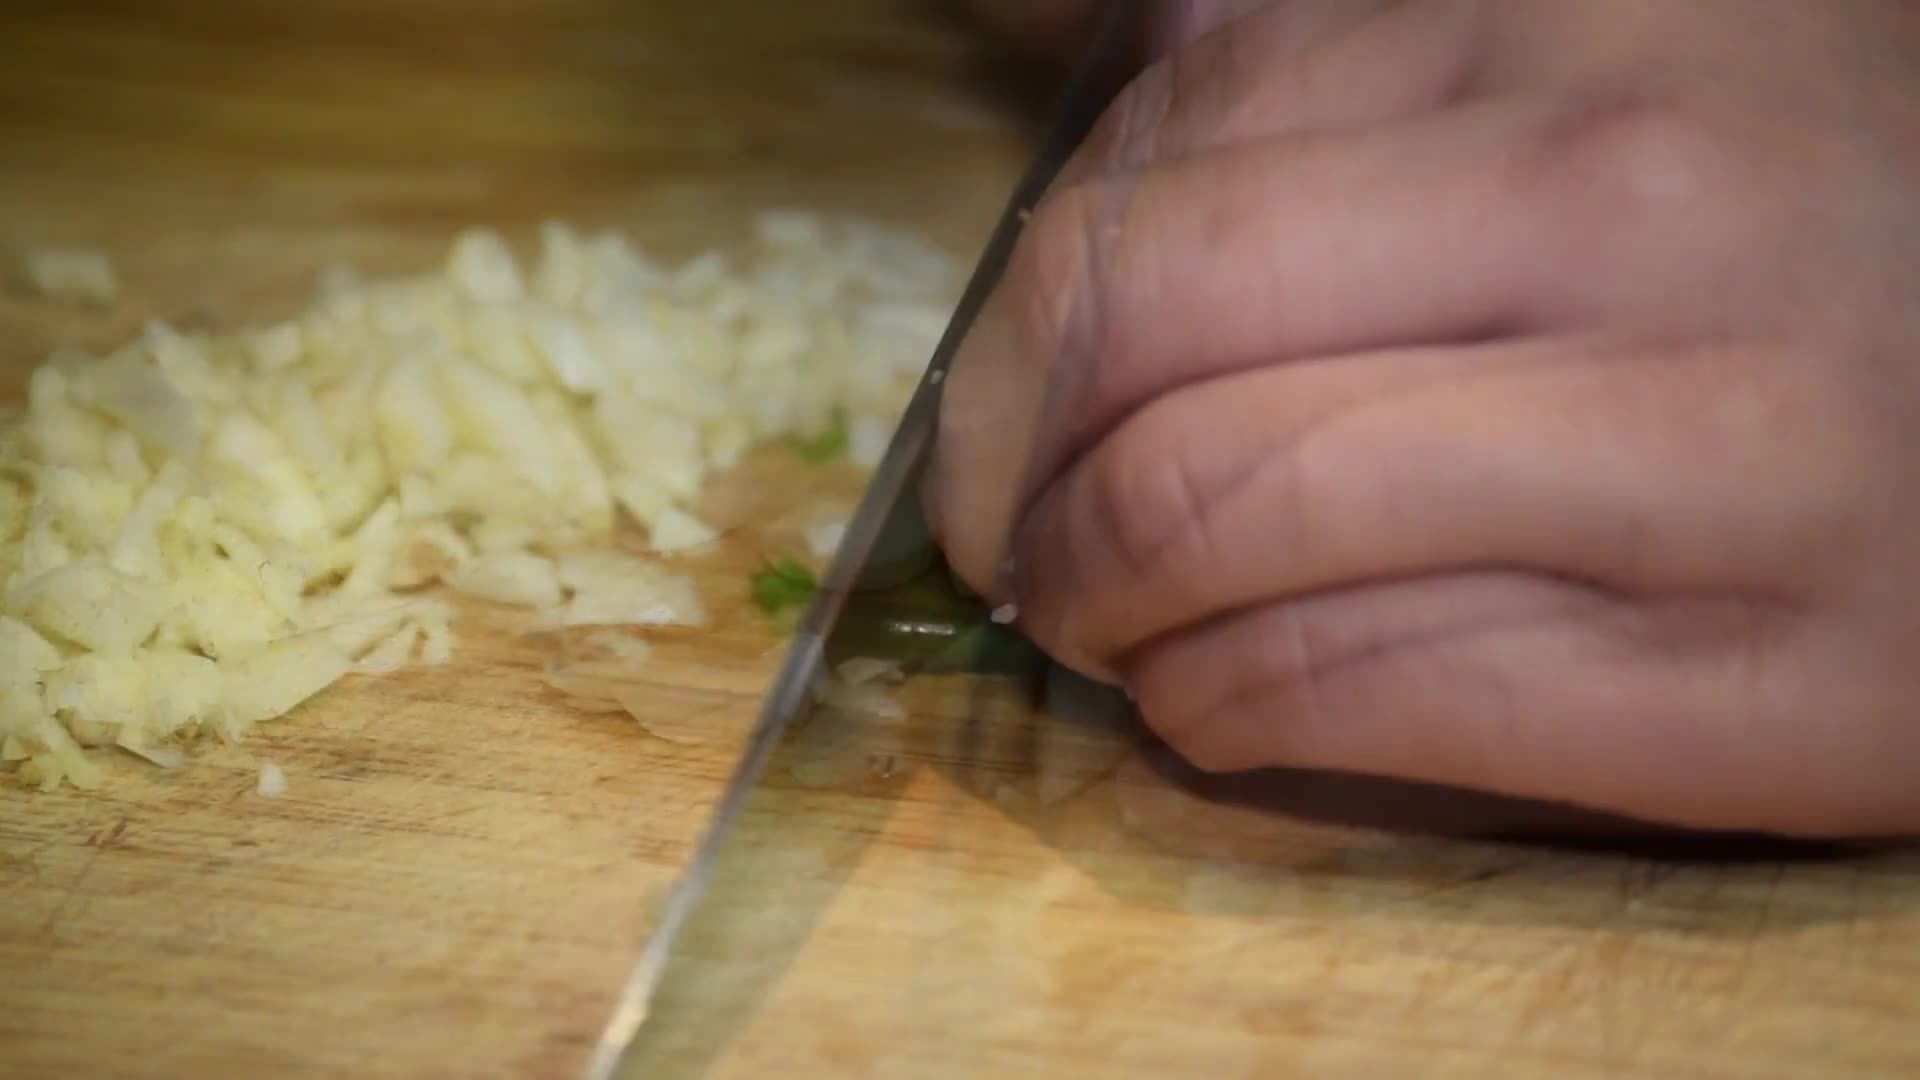 Cooking onions cutting vegetables herbs